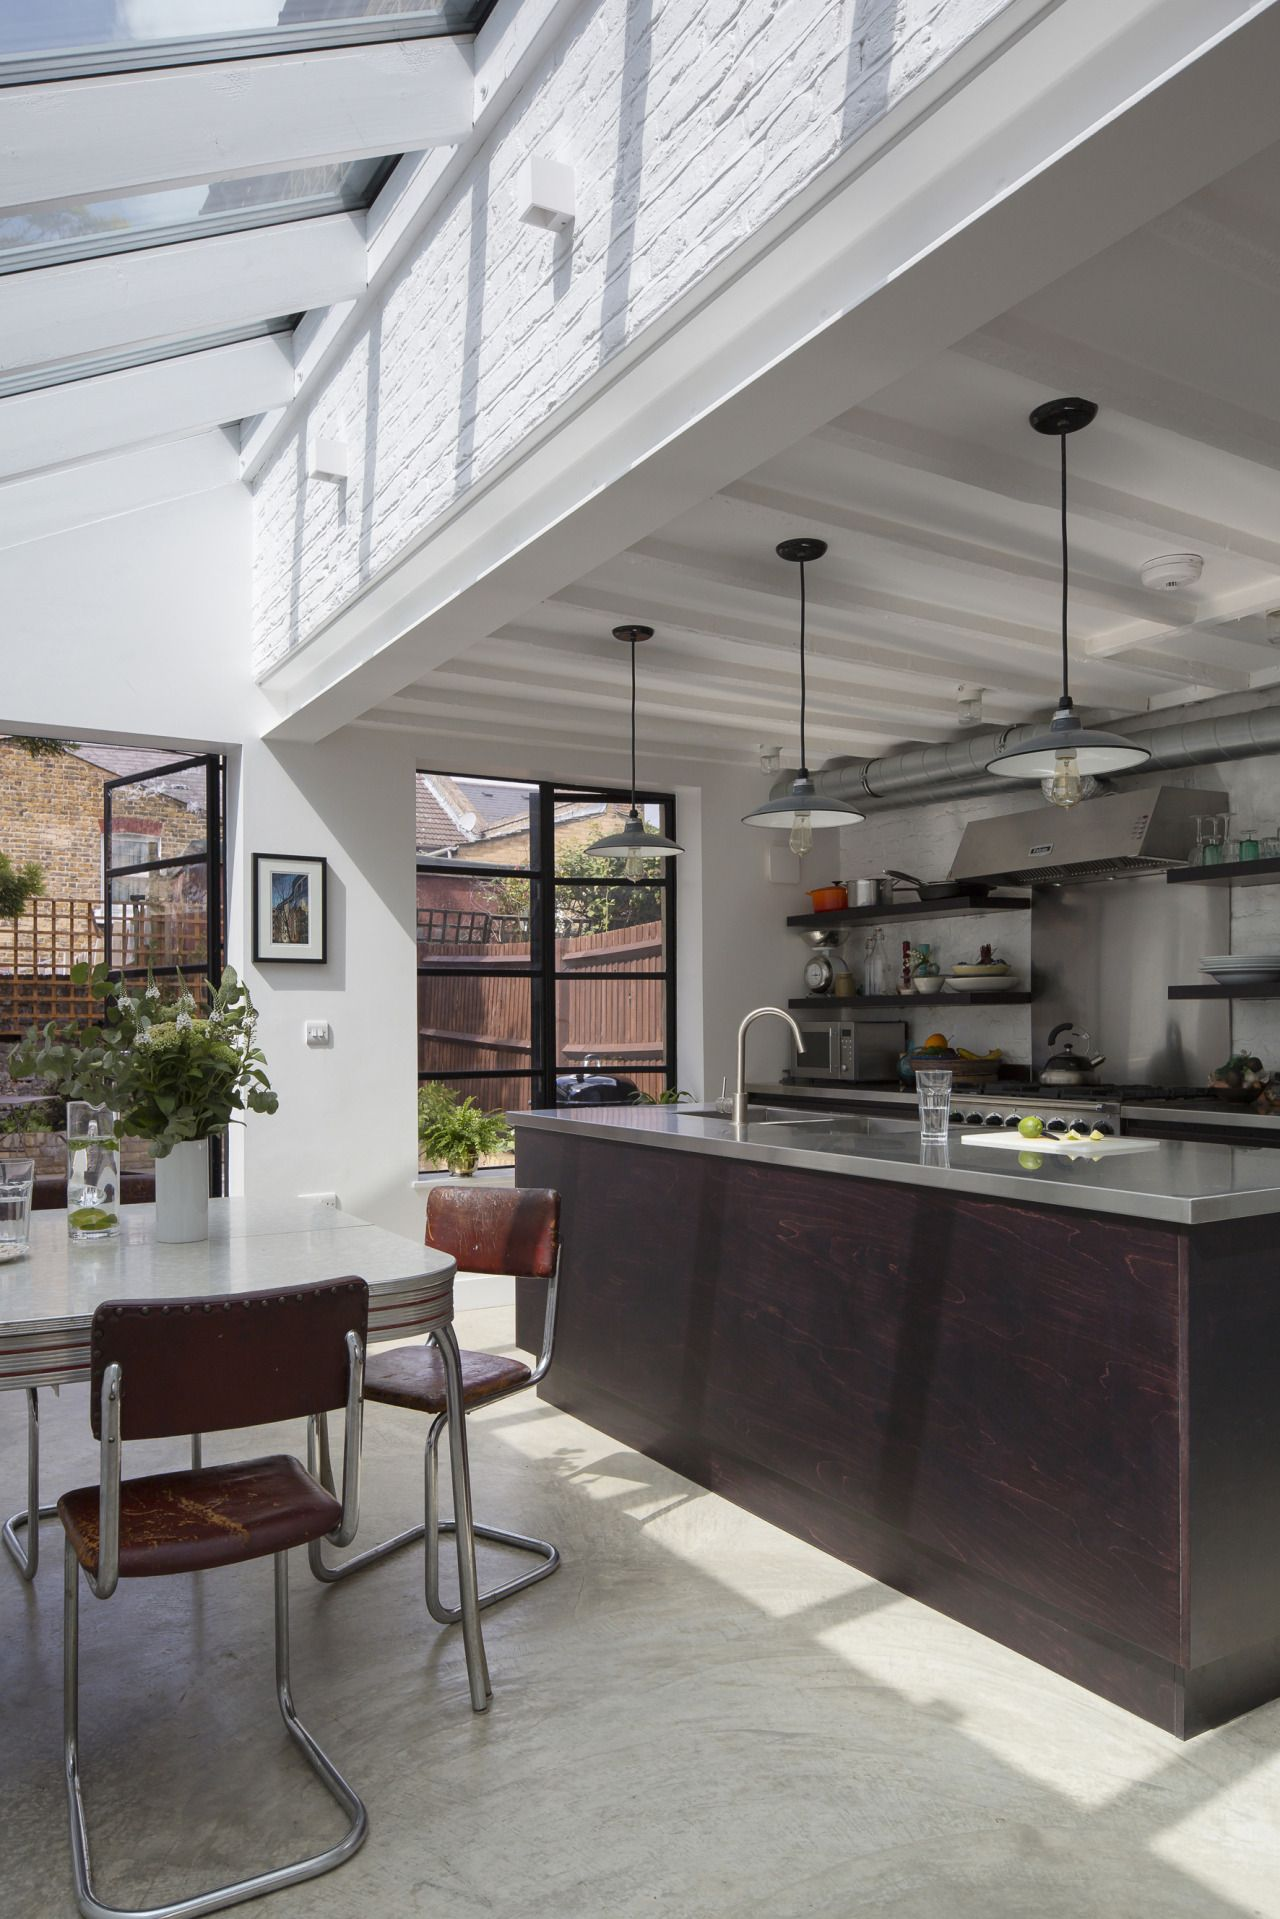 steel crittal windows and a high glass side return combine to make